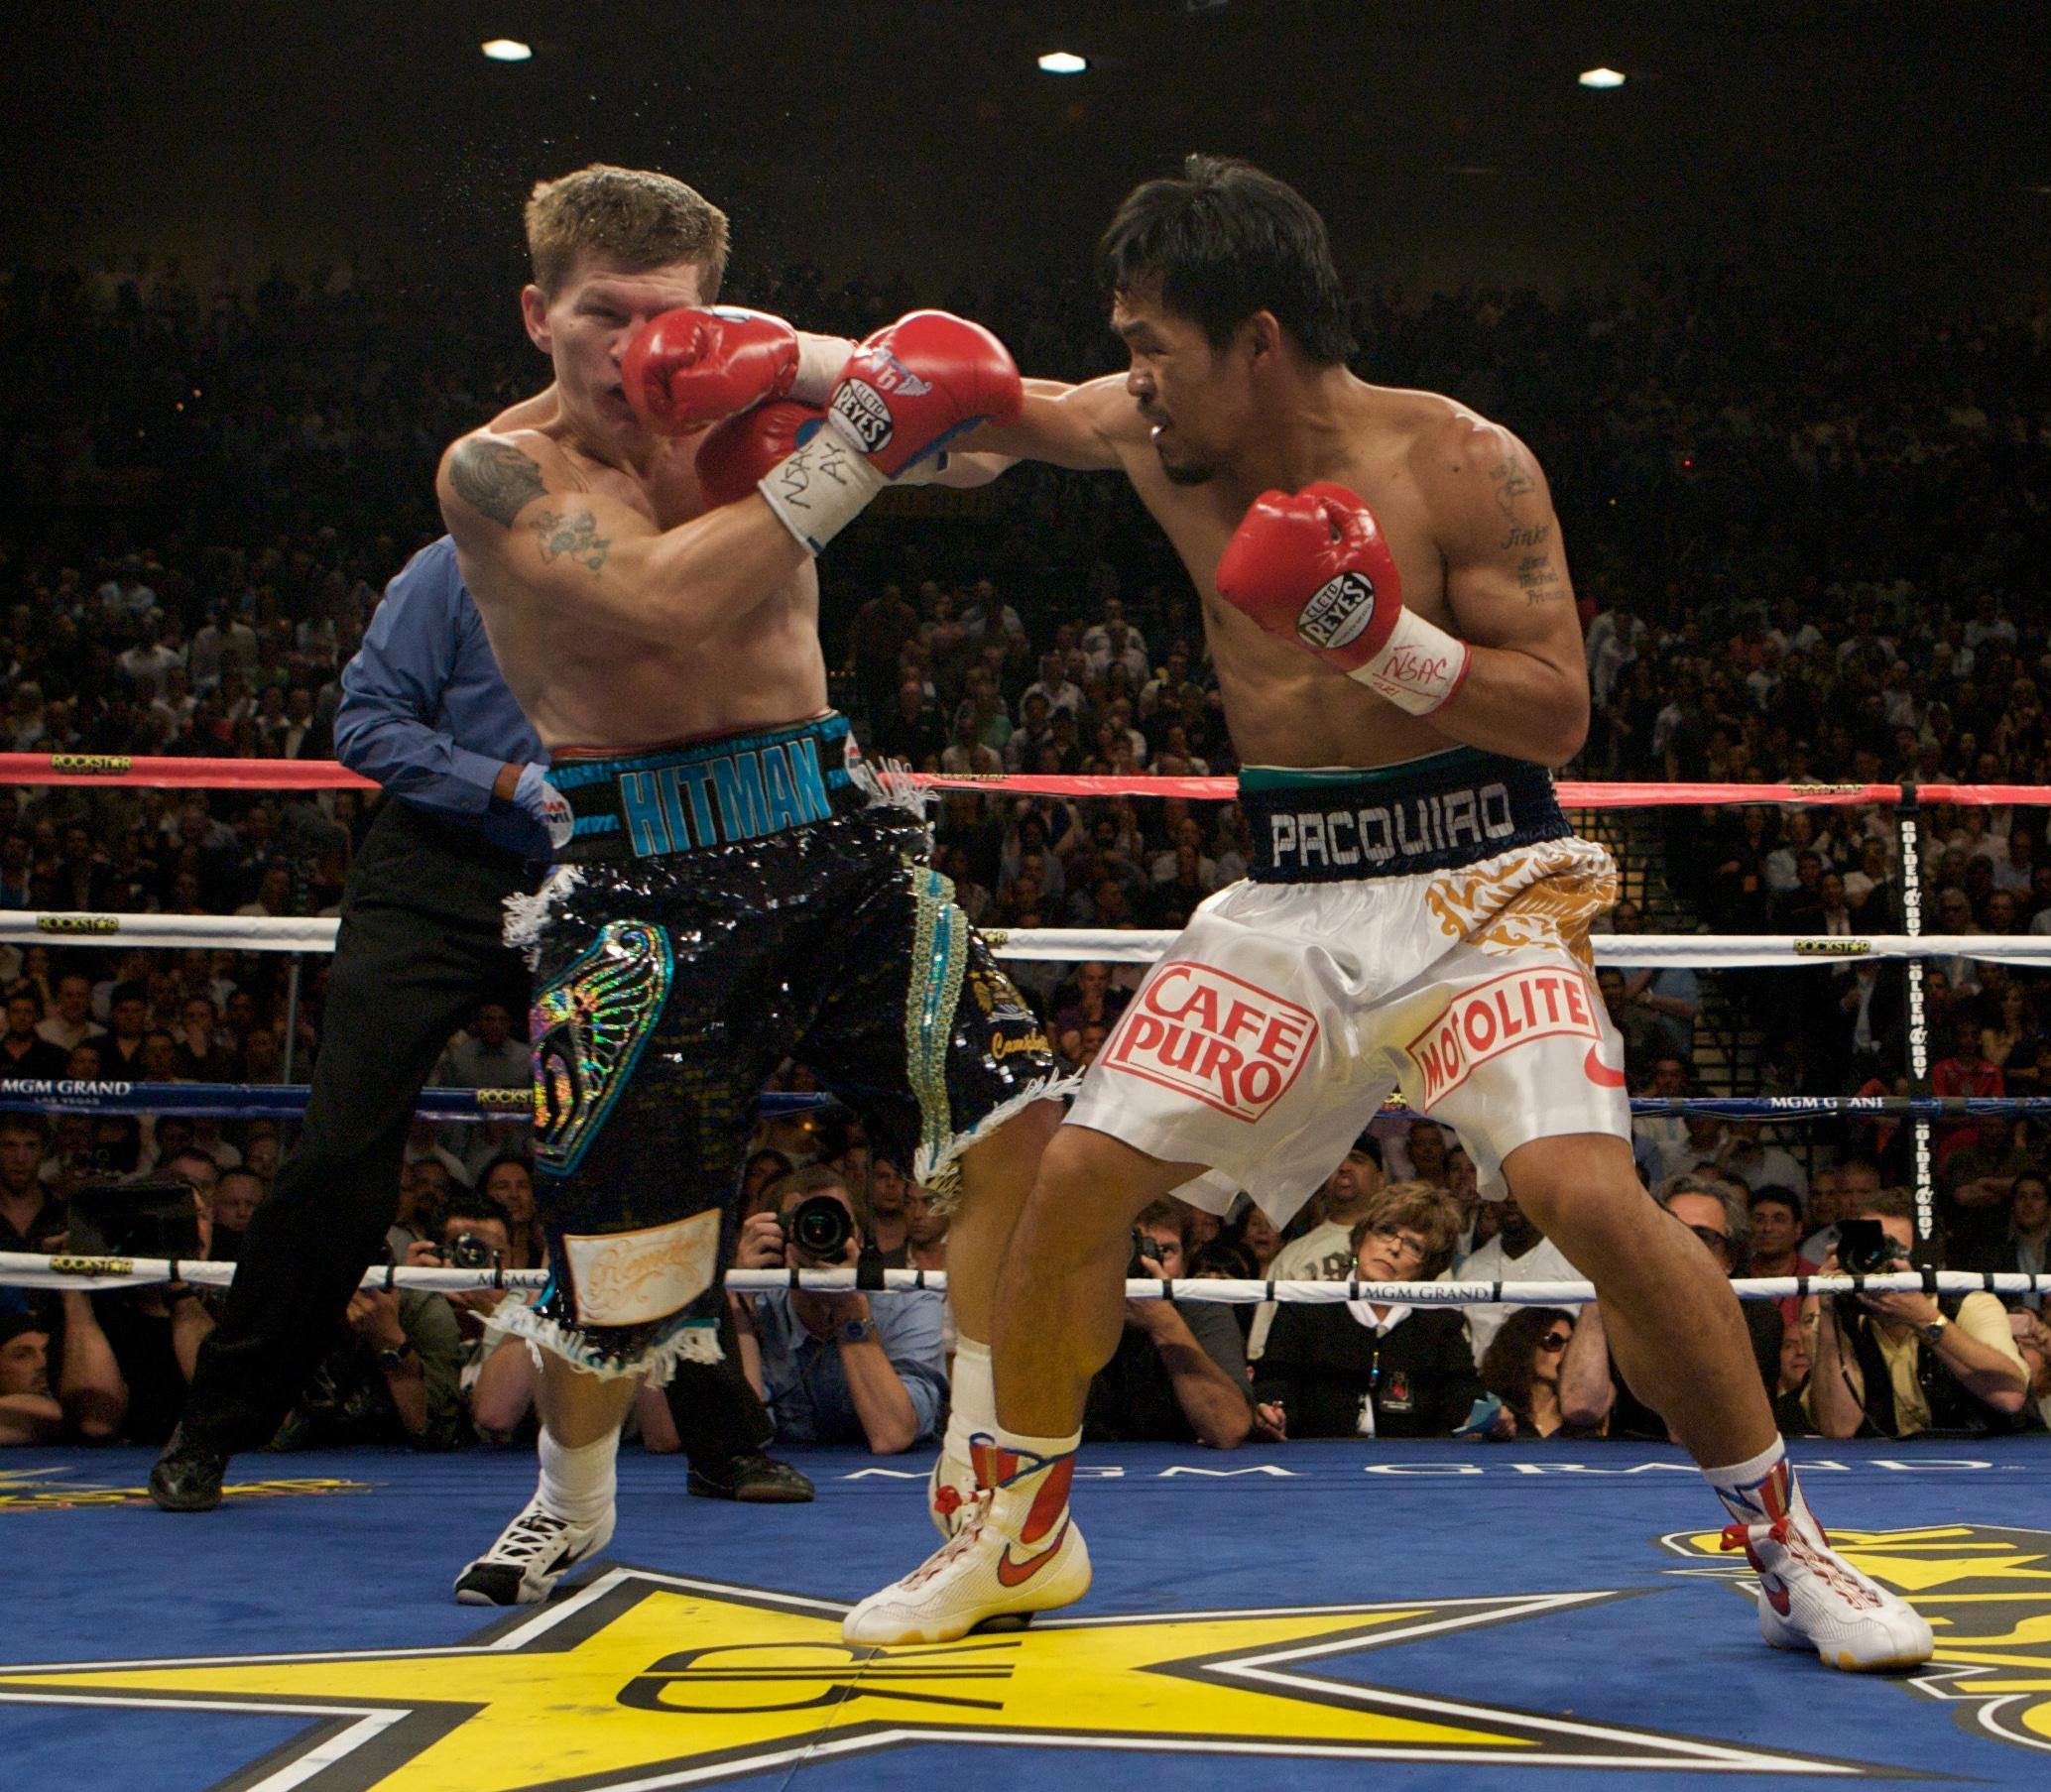 The 39-year-old's defeat to Manny Pacquiao in 2009 saw him enter a downward spiral